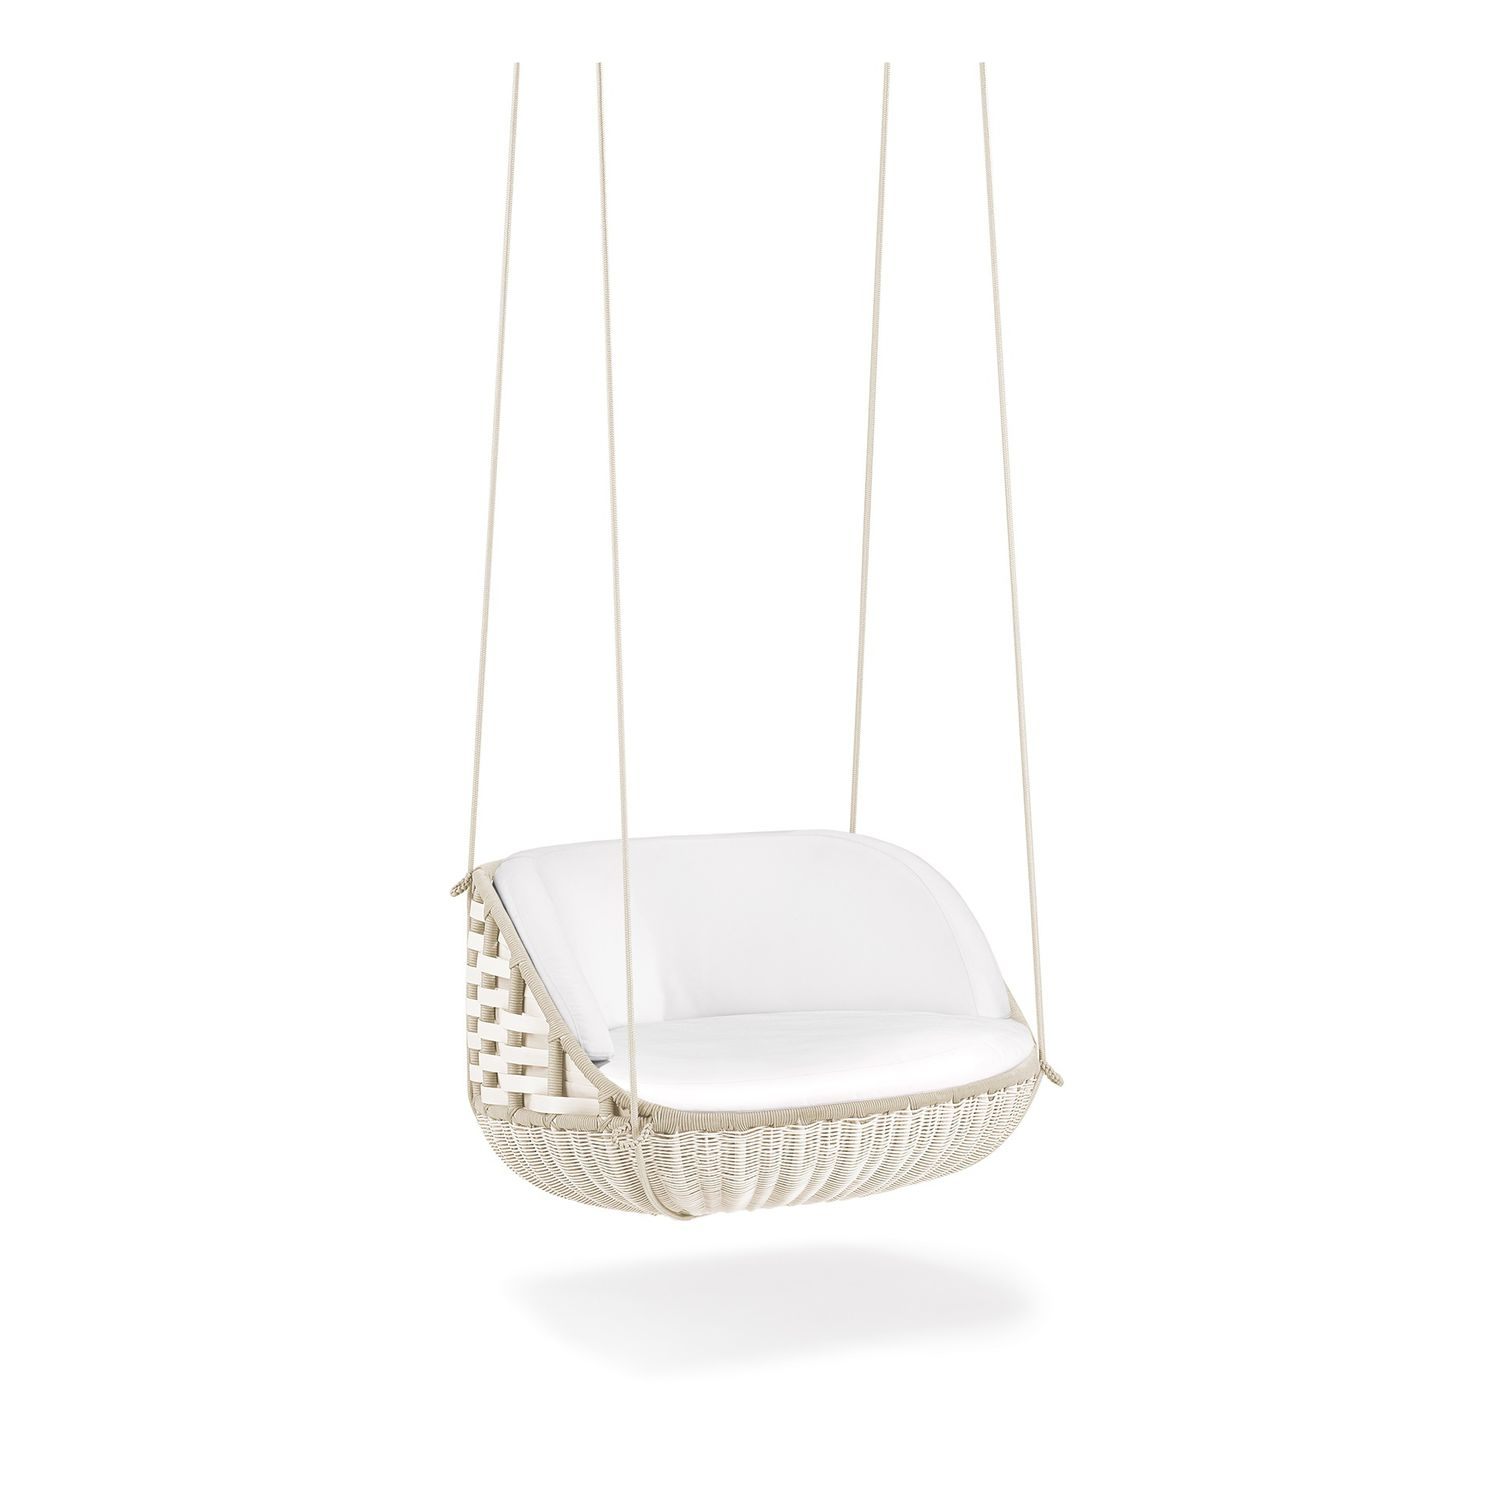 Captivating Contemporary Armchair / Resin Wicker / Hanging / Central Base SWINGREST By  Daniel Pouzet DEDON GmbH ...